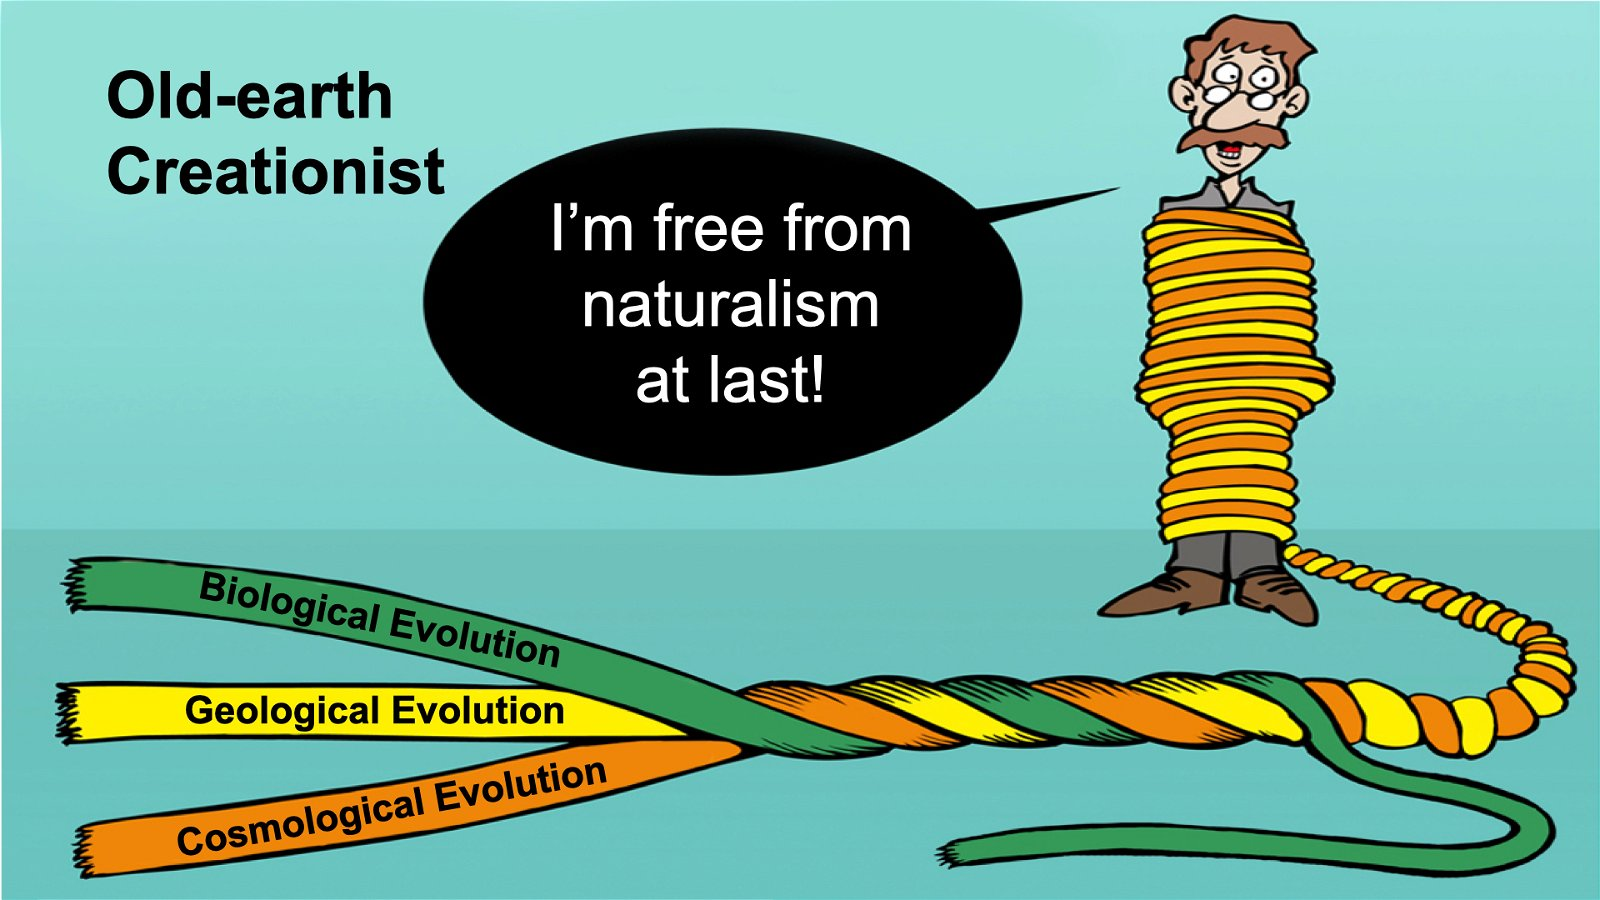 Old-earth creationists